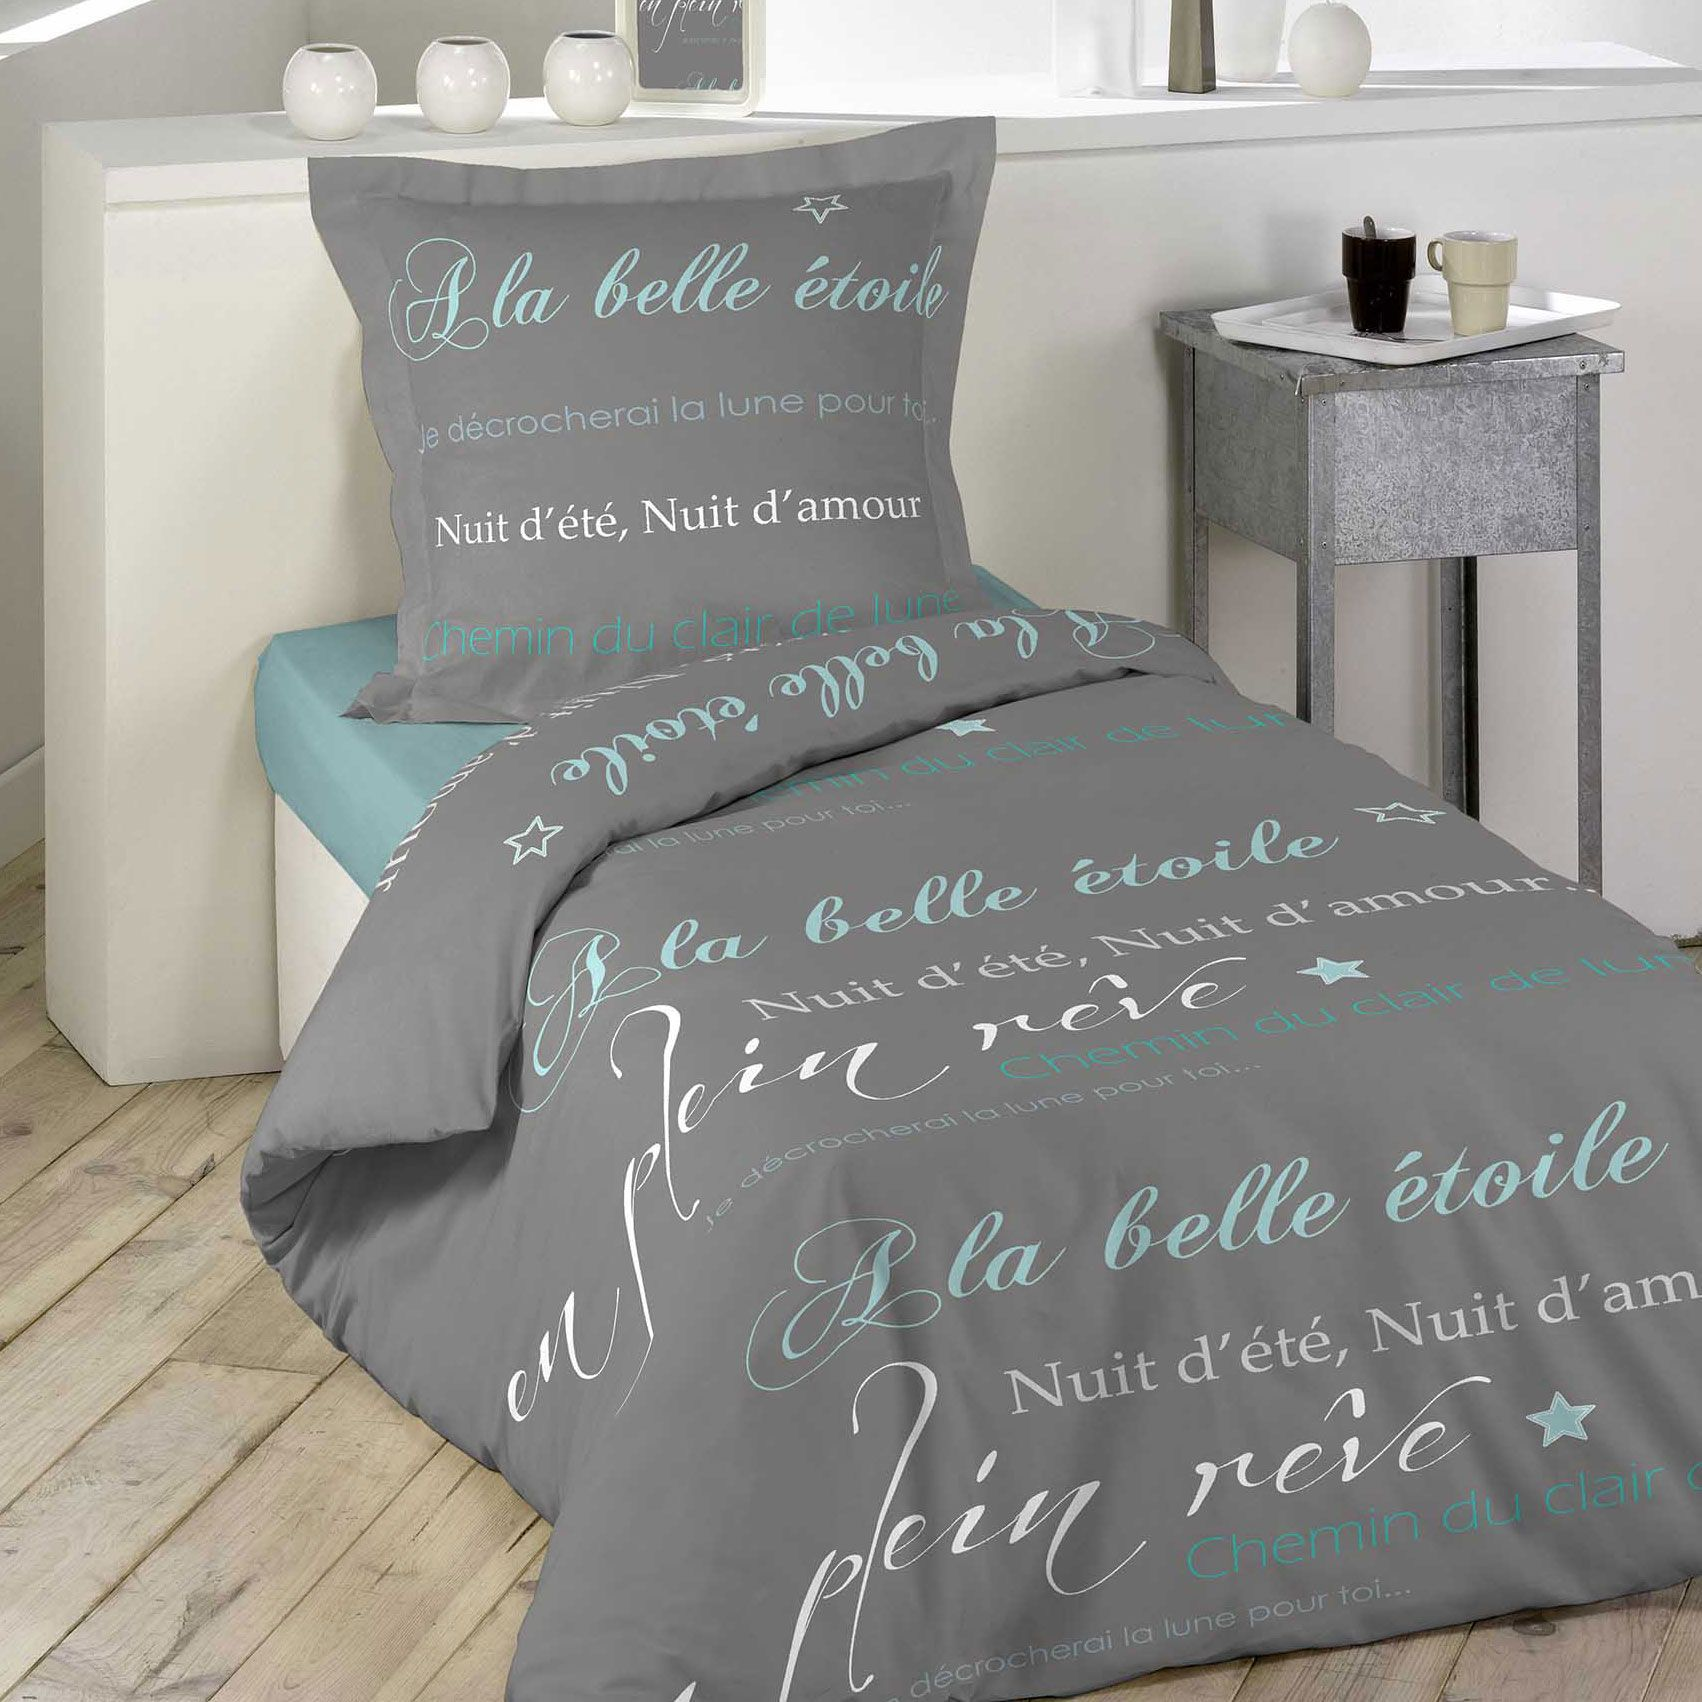 housse de couette et taie belle etoile 100 coton 140 cm gris housse de couette eminza. Black Bedroom Furniture Sets. Home Design Ideas